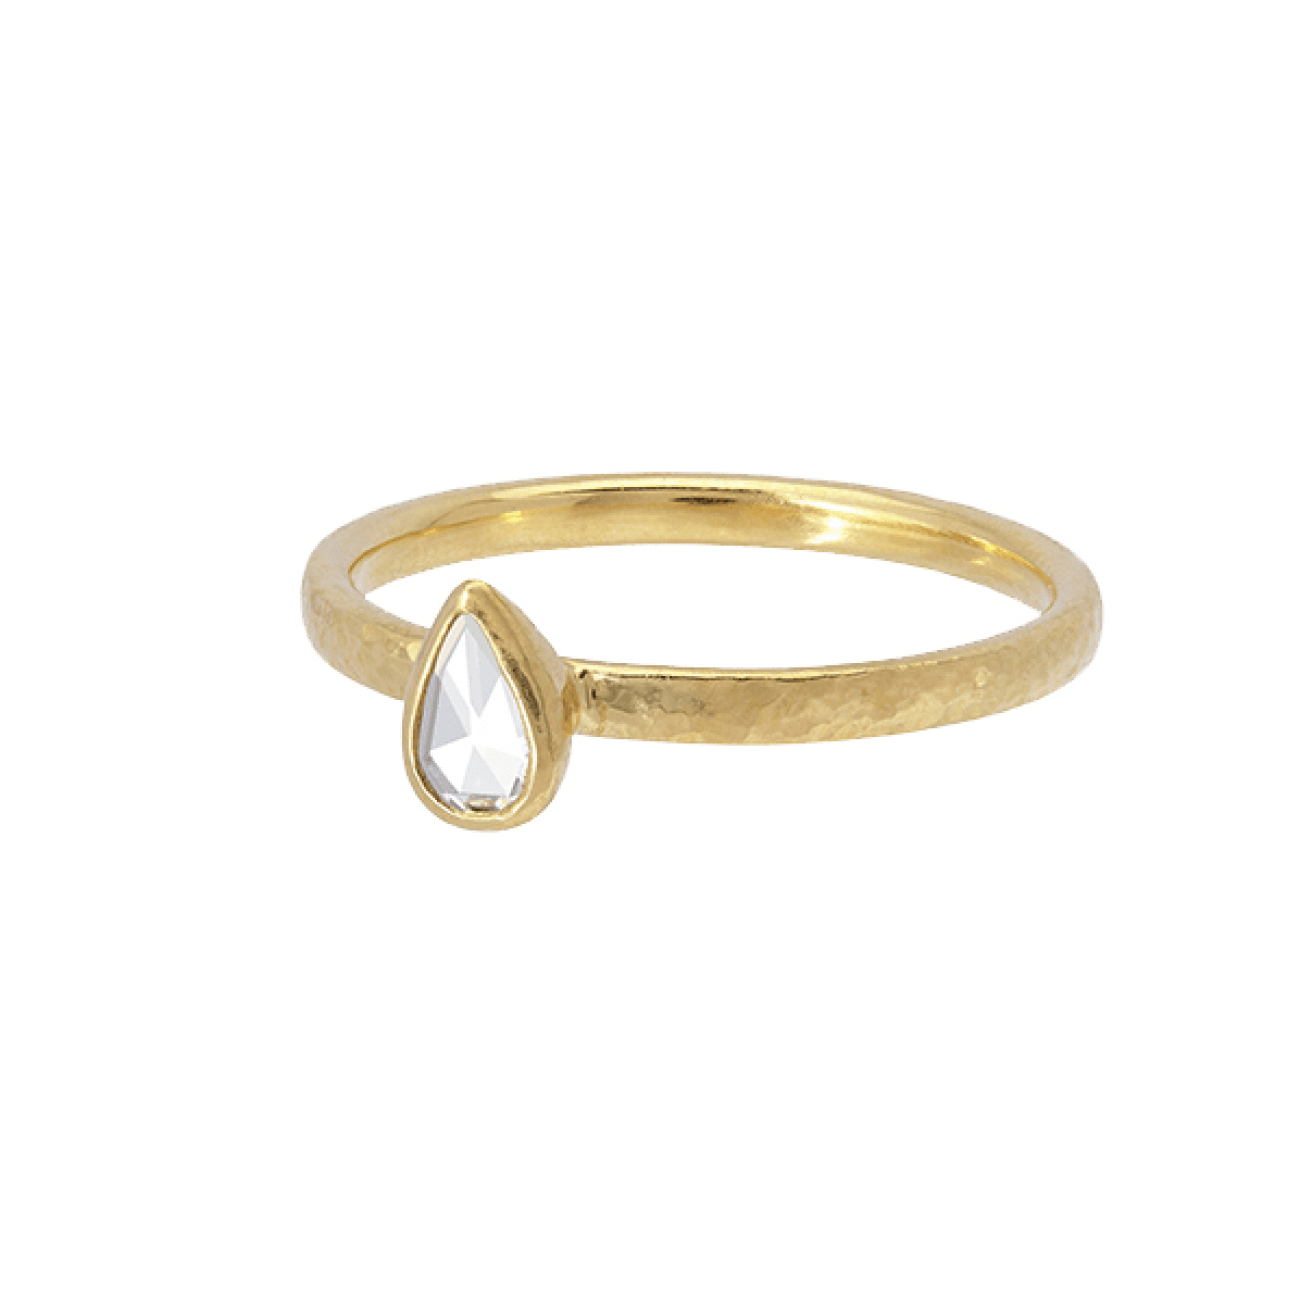 Gurhan Jewelry - Stacking ring with drop rose cut diamond | Manfredi Jewels